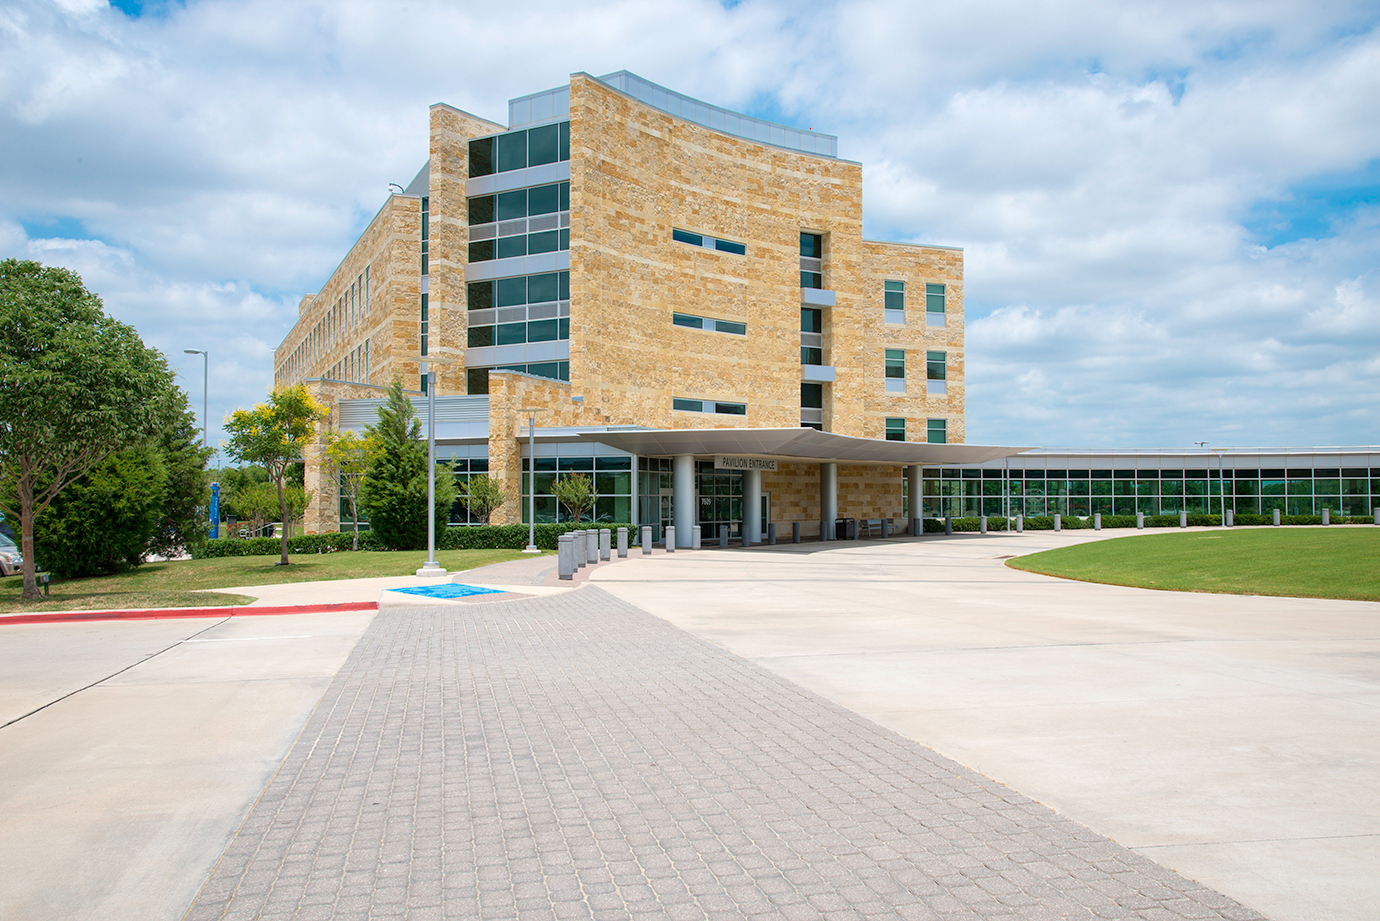 Childrens-Hospital-Plano-Texas